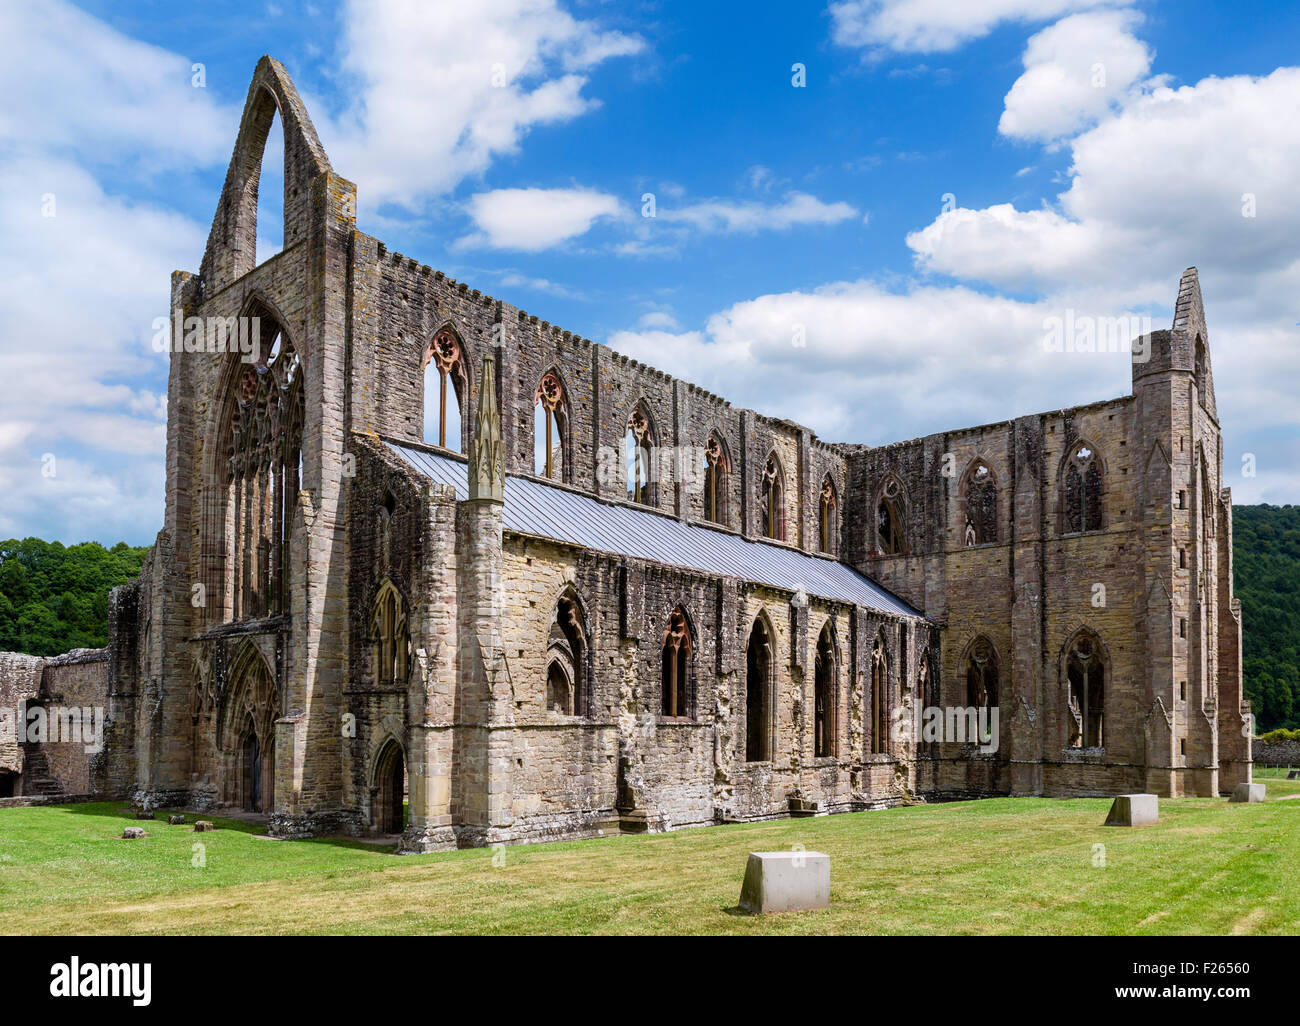 The ruins of Tintern Abbey, near Chepstow, Wye Valley, Monmouthshire, Wales, UK - Stock Image